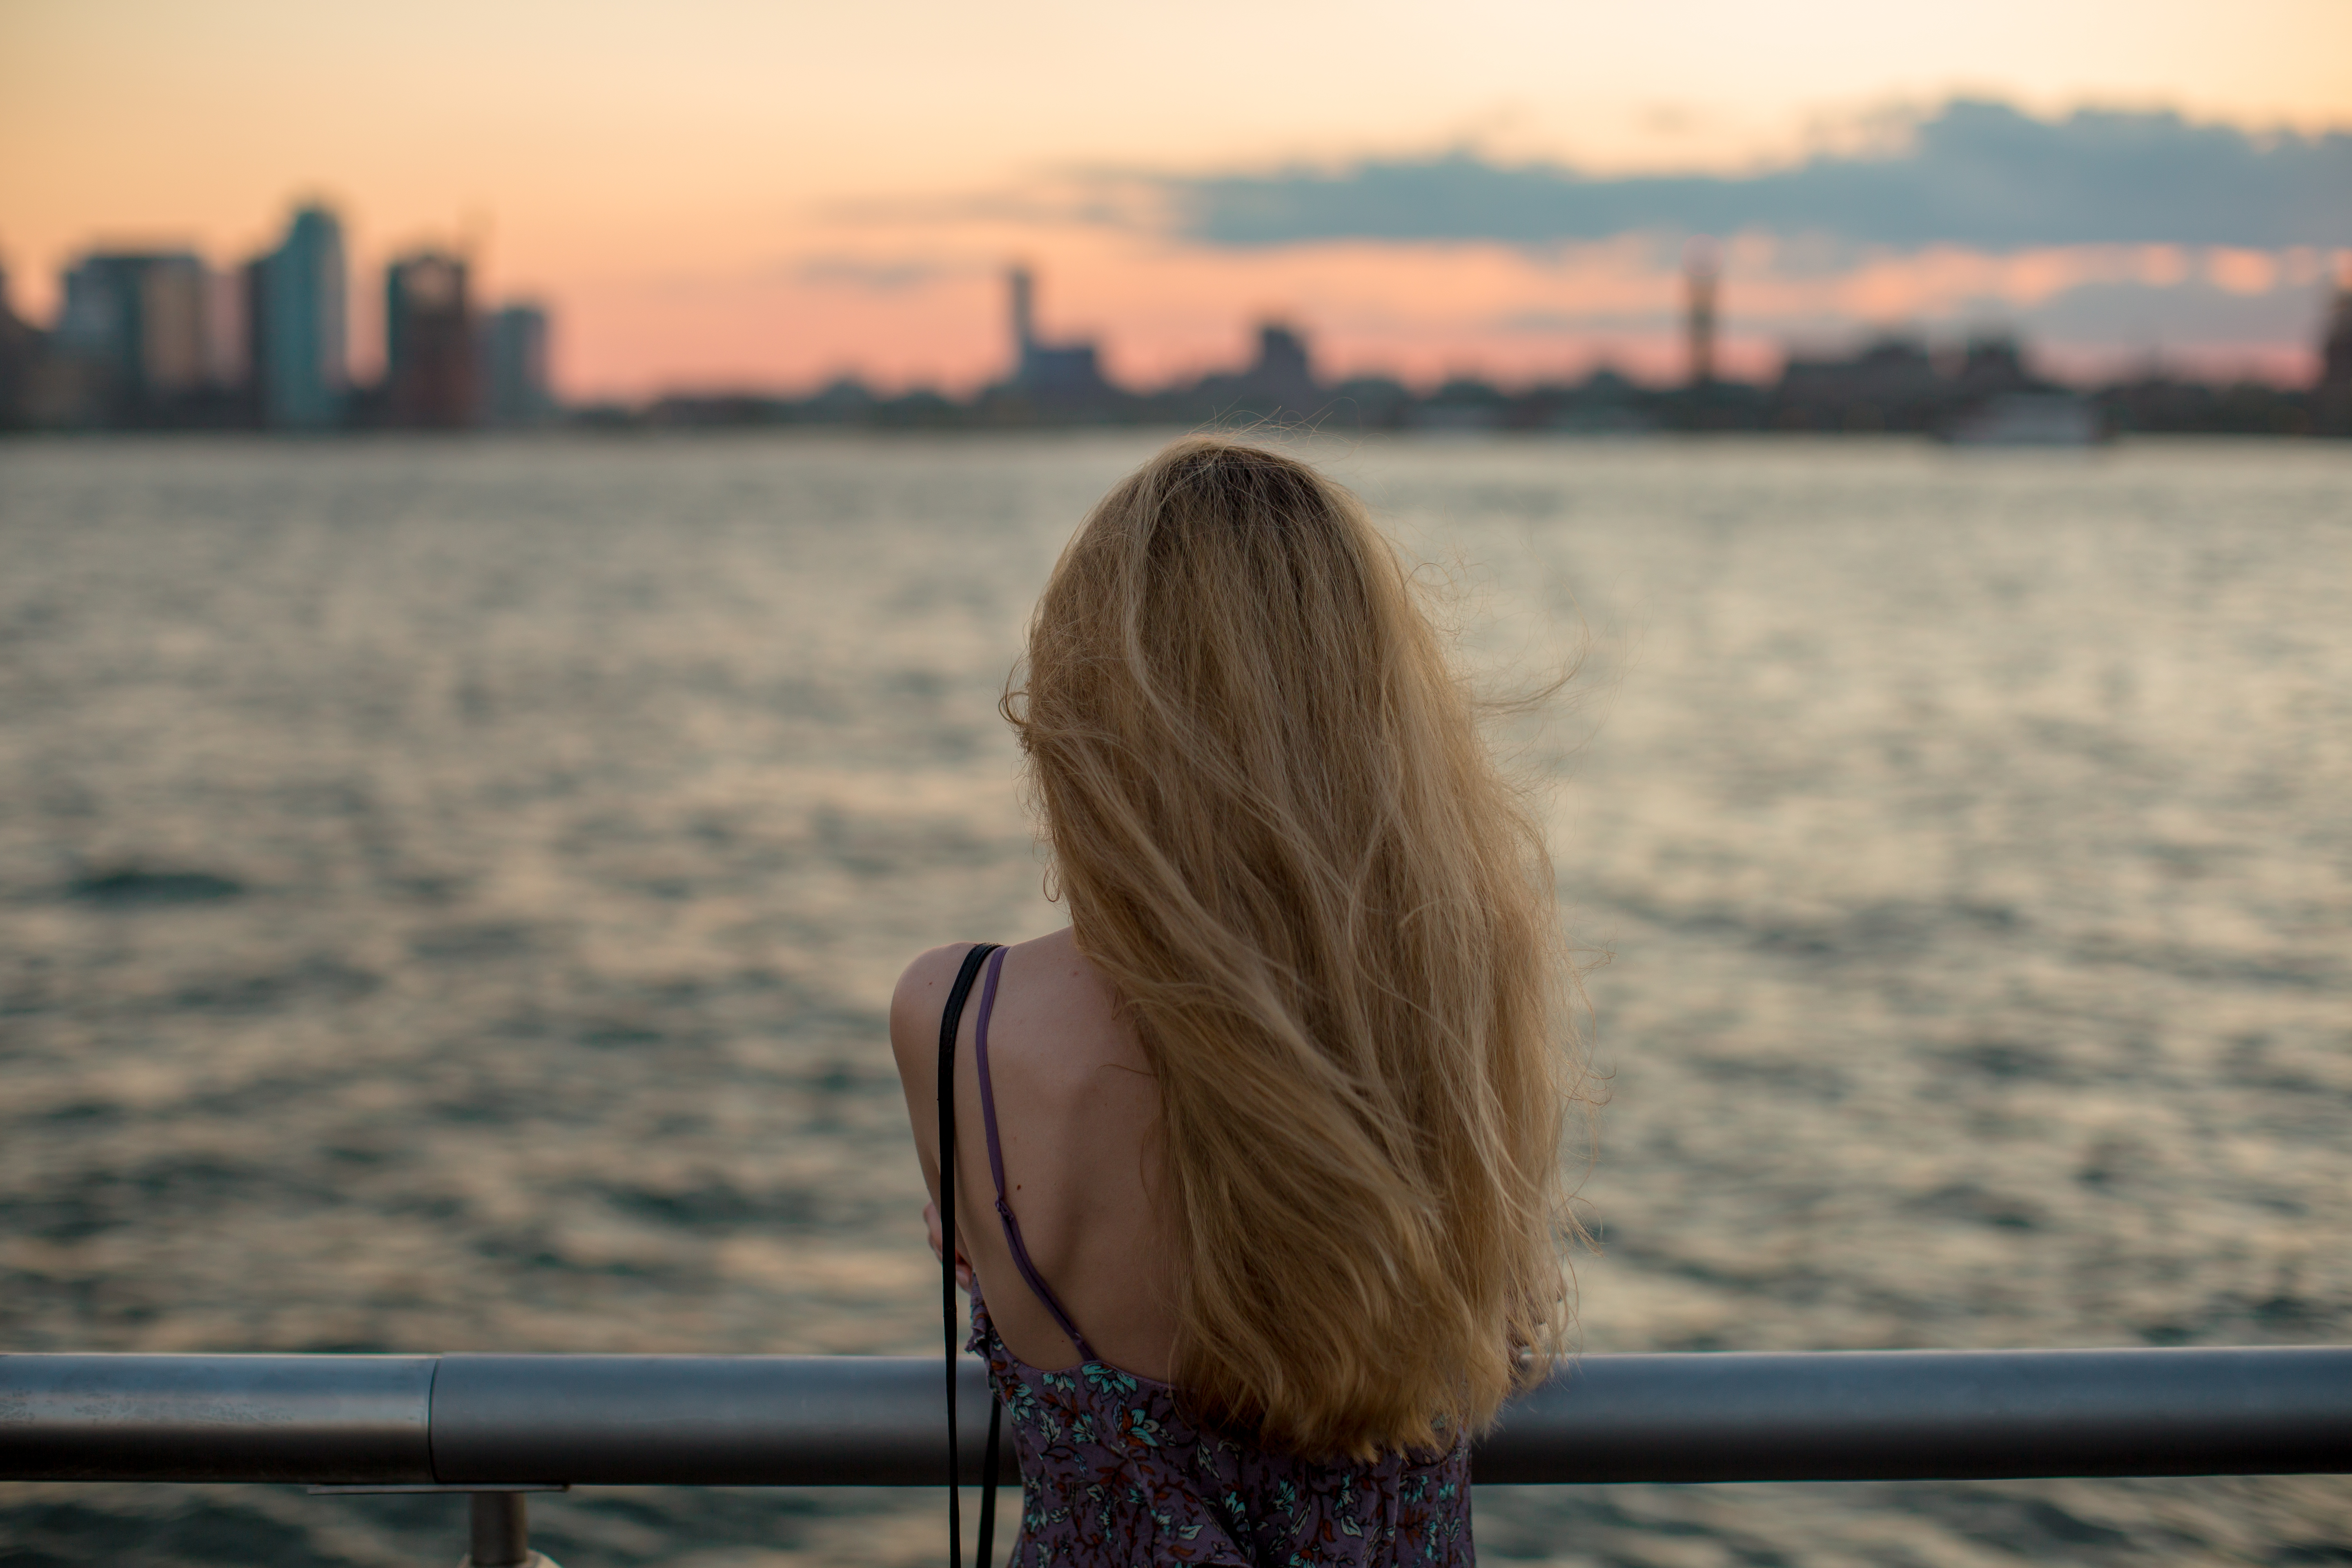 Girl enjoys sunset at the pier example image 1